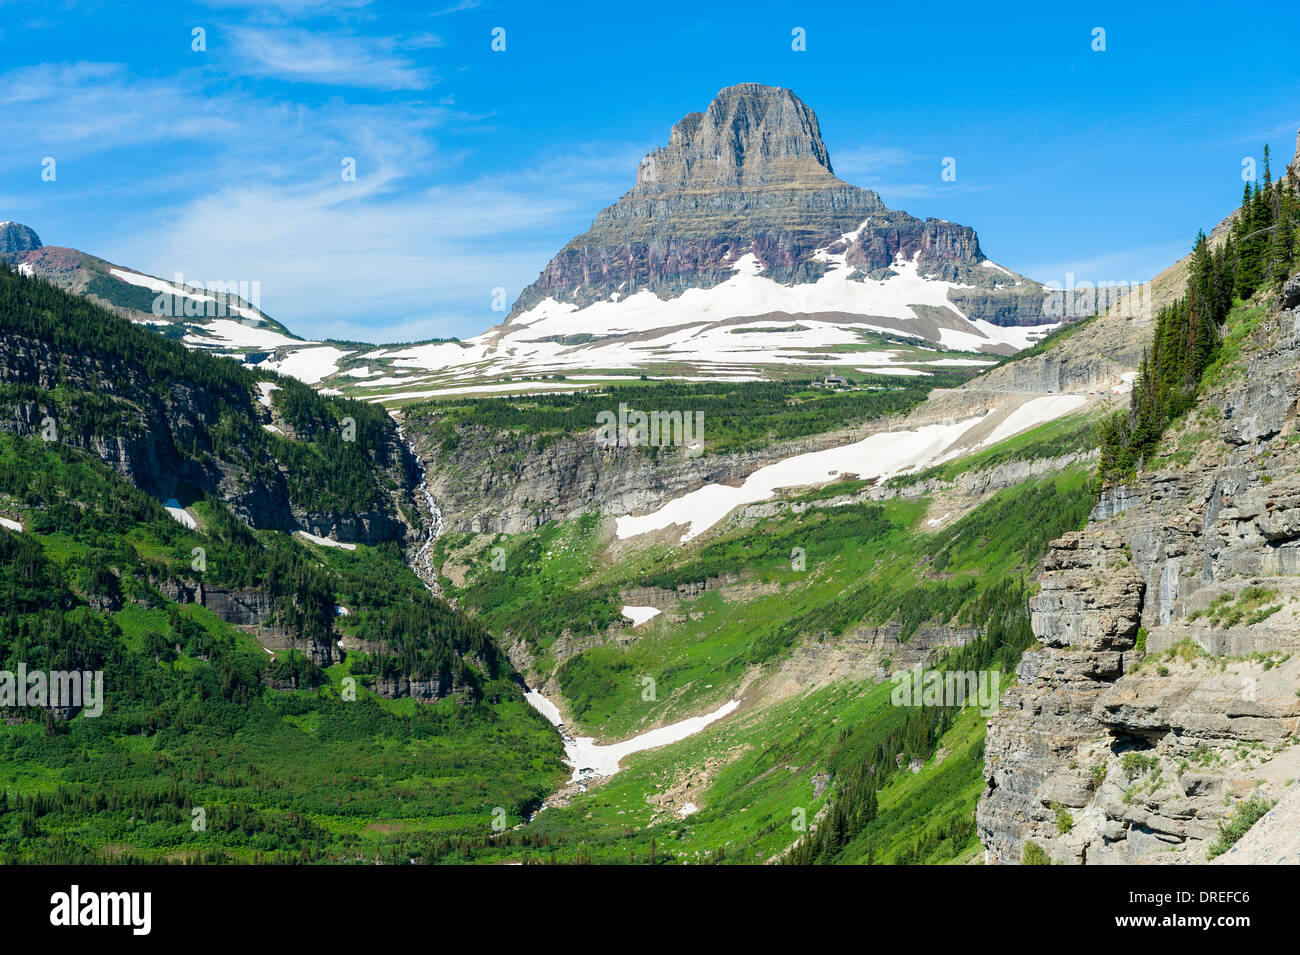 View of Clements Mountain from 'Going-to-the-Sun' Road (built 1921-1932), Glacier National Park, Montana, USA. - Stock Image